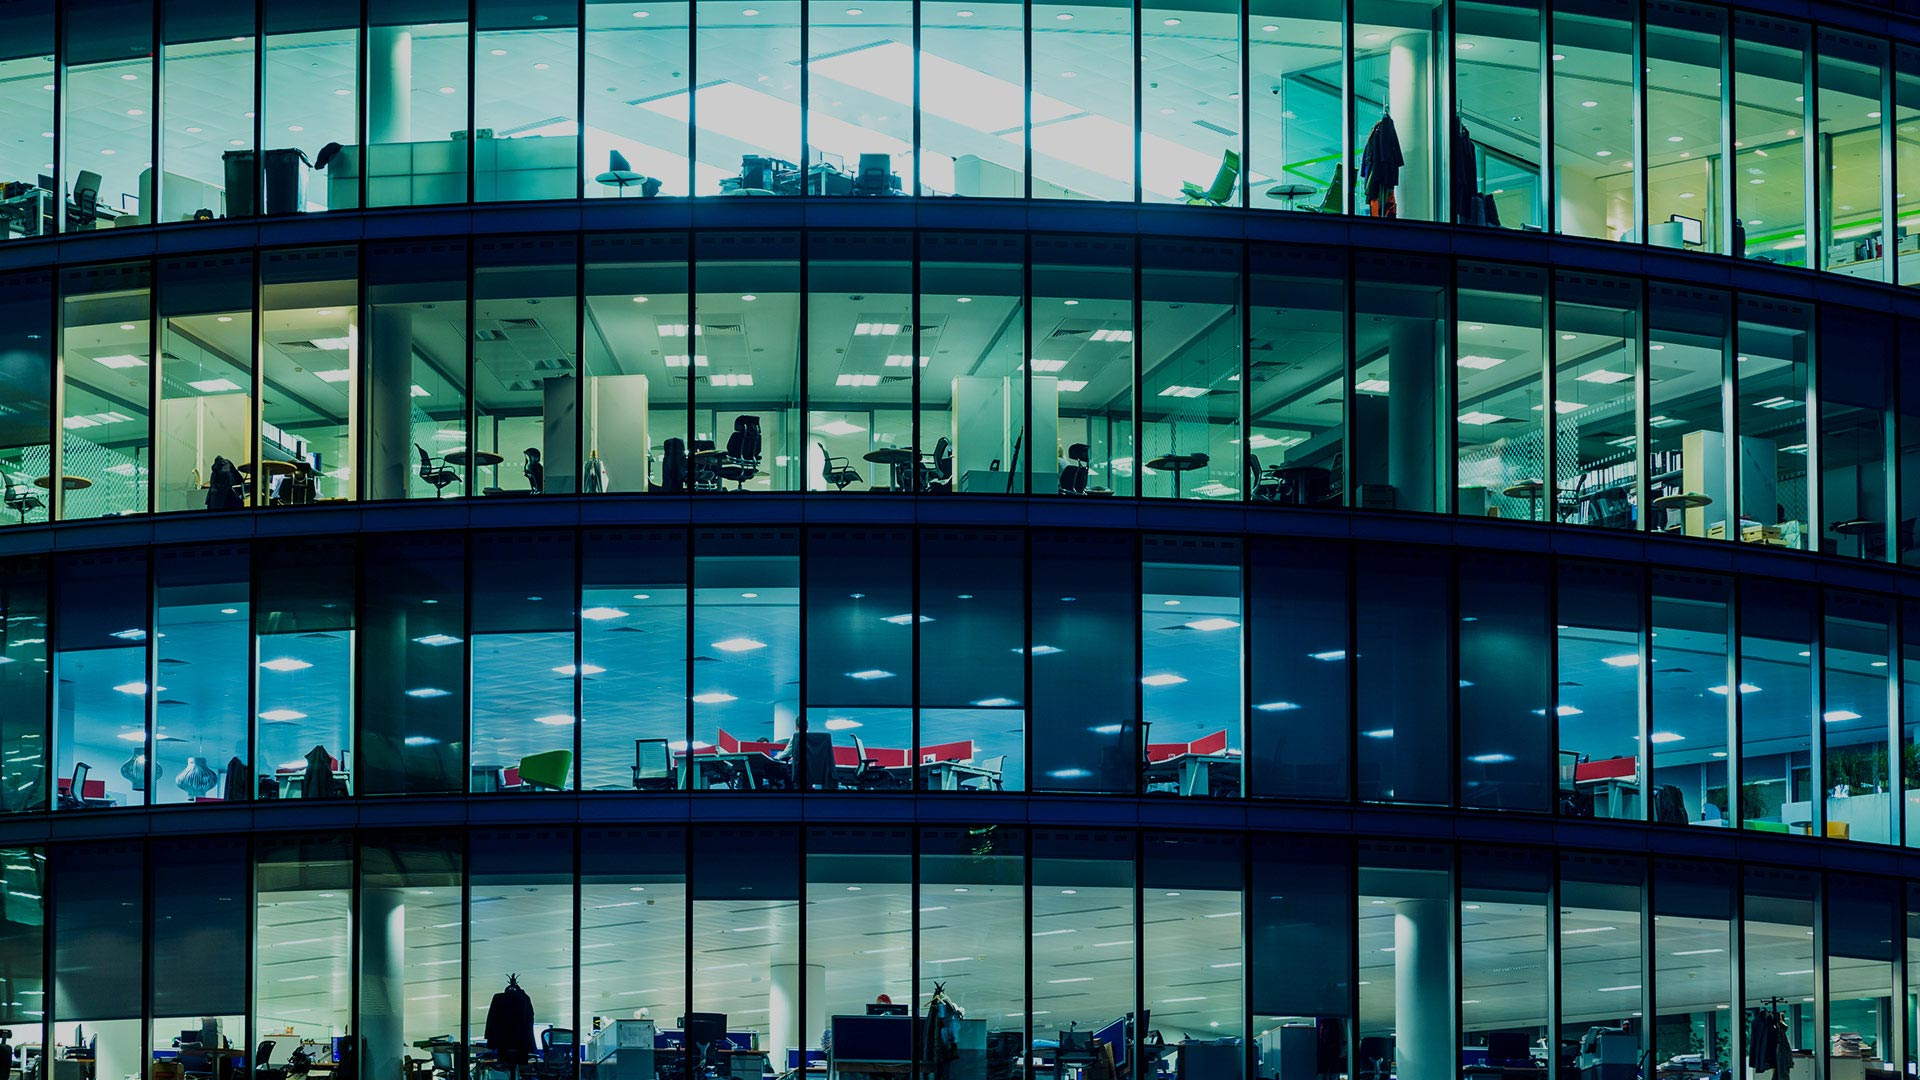 UK: Responding to an approach: Some key considerations for potential target companies